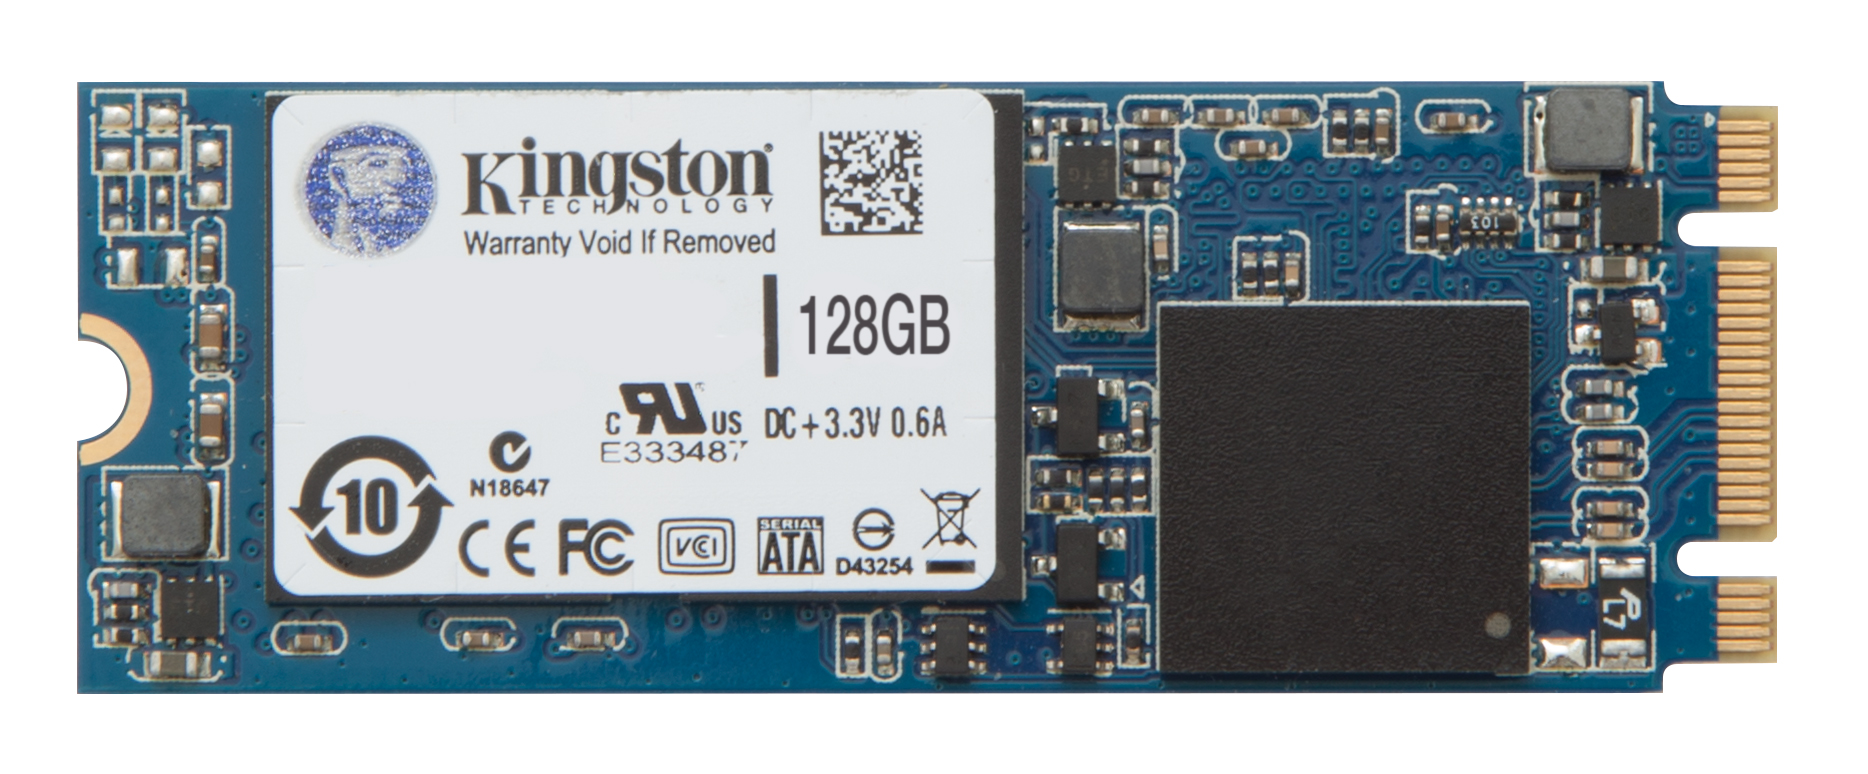 Kingston_M.2_2260_128GB_SSD_01